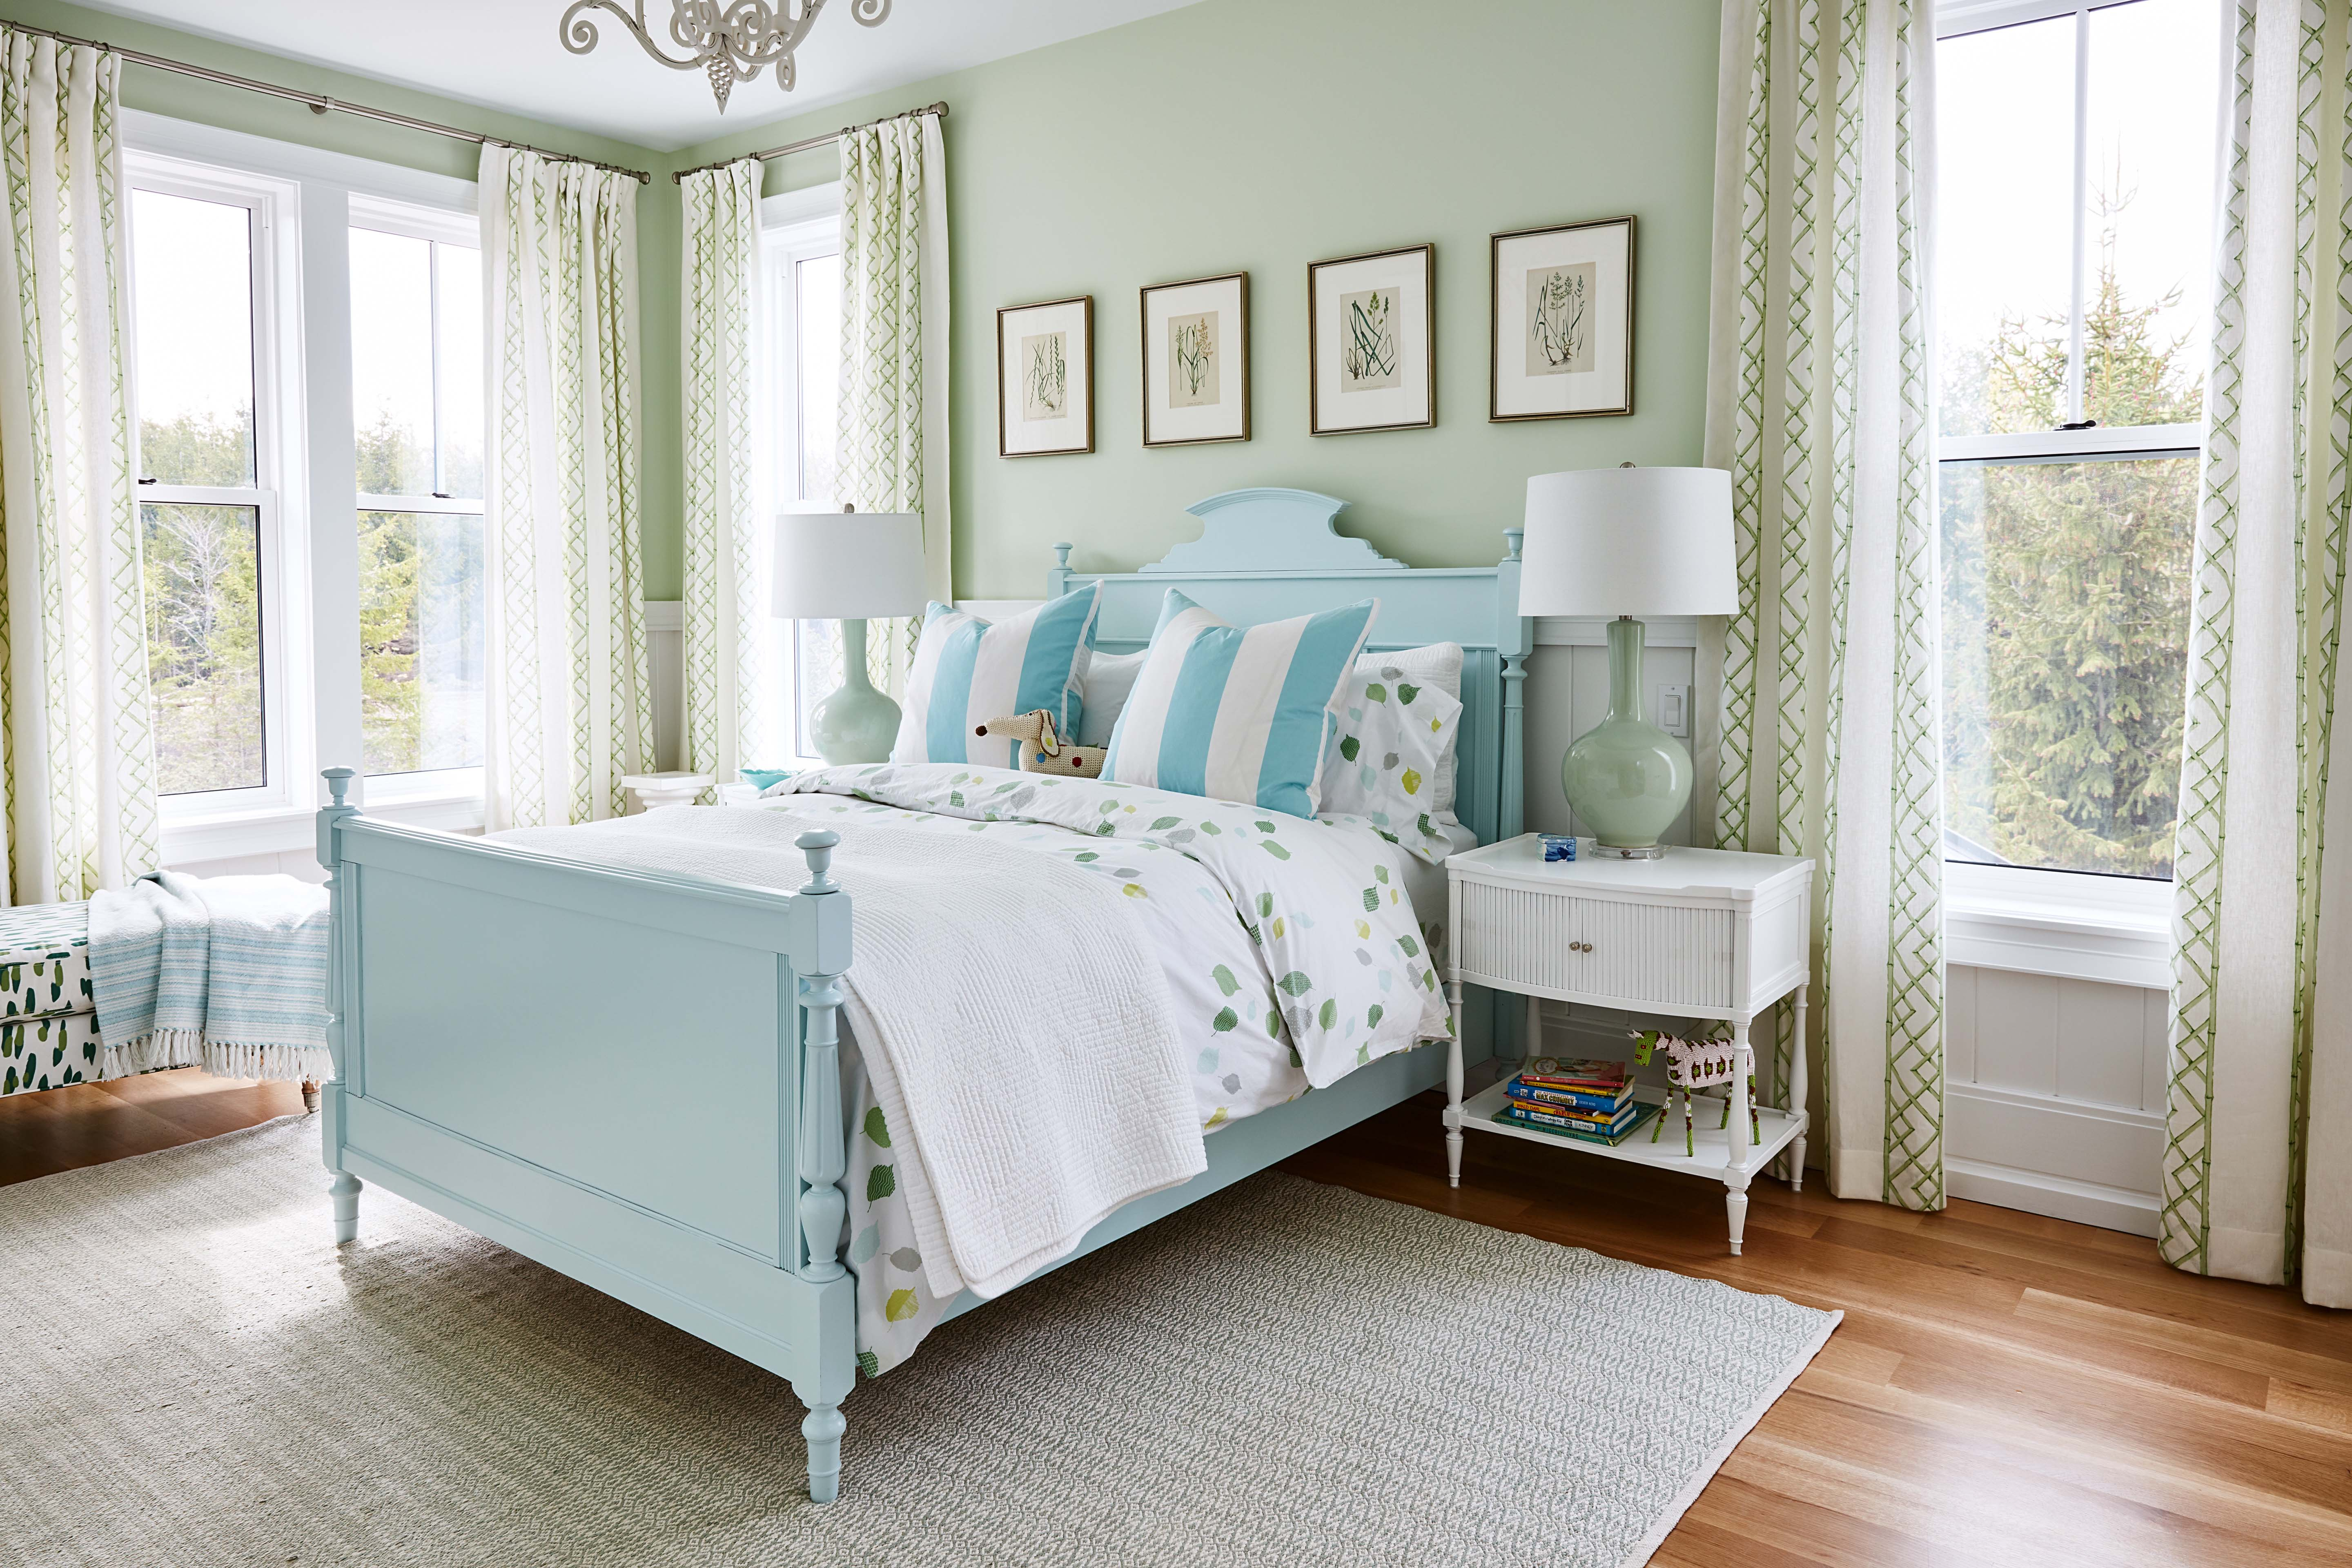 Celebrity designer Sarah Richardson styles her daughter's bedroom using Metre's very own Fashion Forward Collection baseboard and Very Square Collection chair rail.